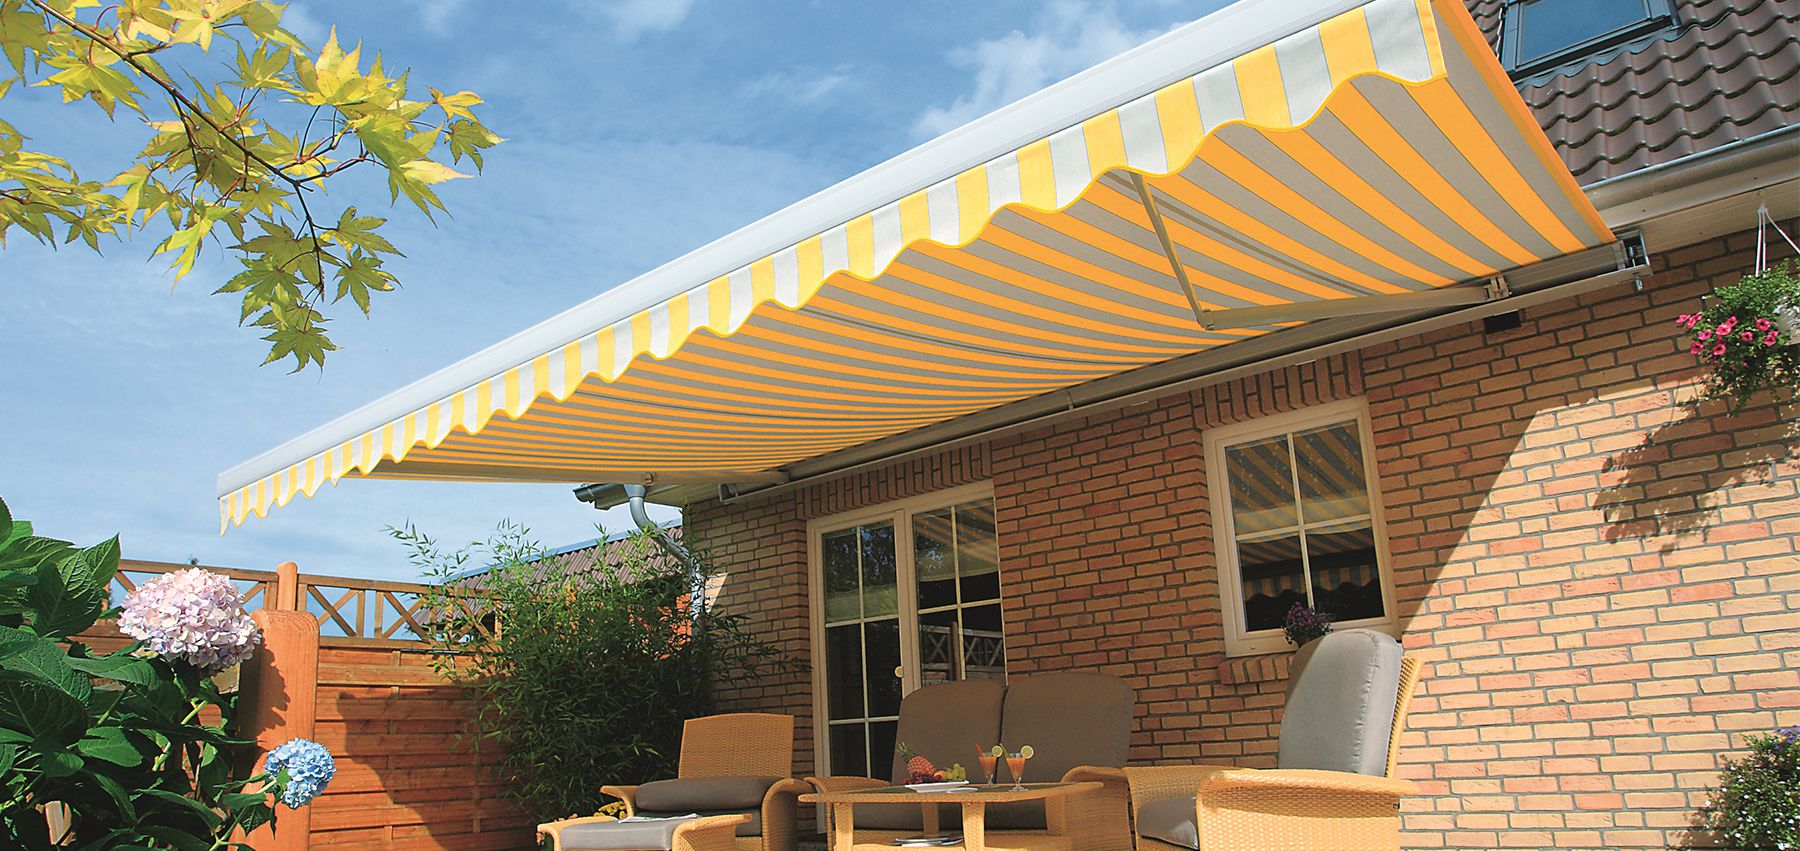 The Many benefits of Choosing Folding Awnings to Create More Space